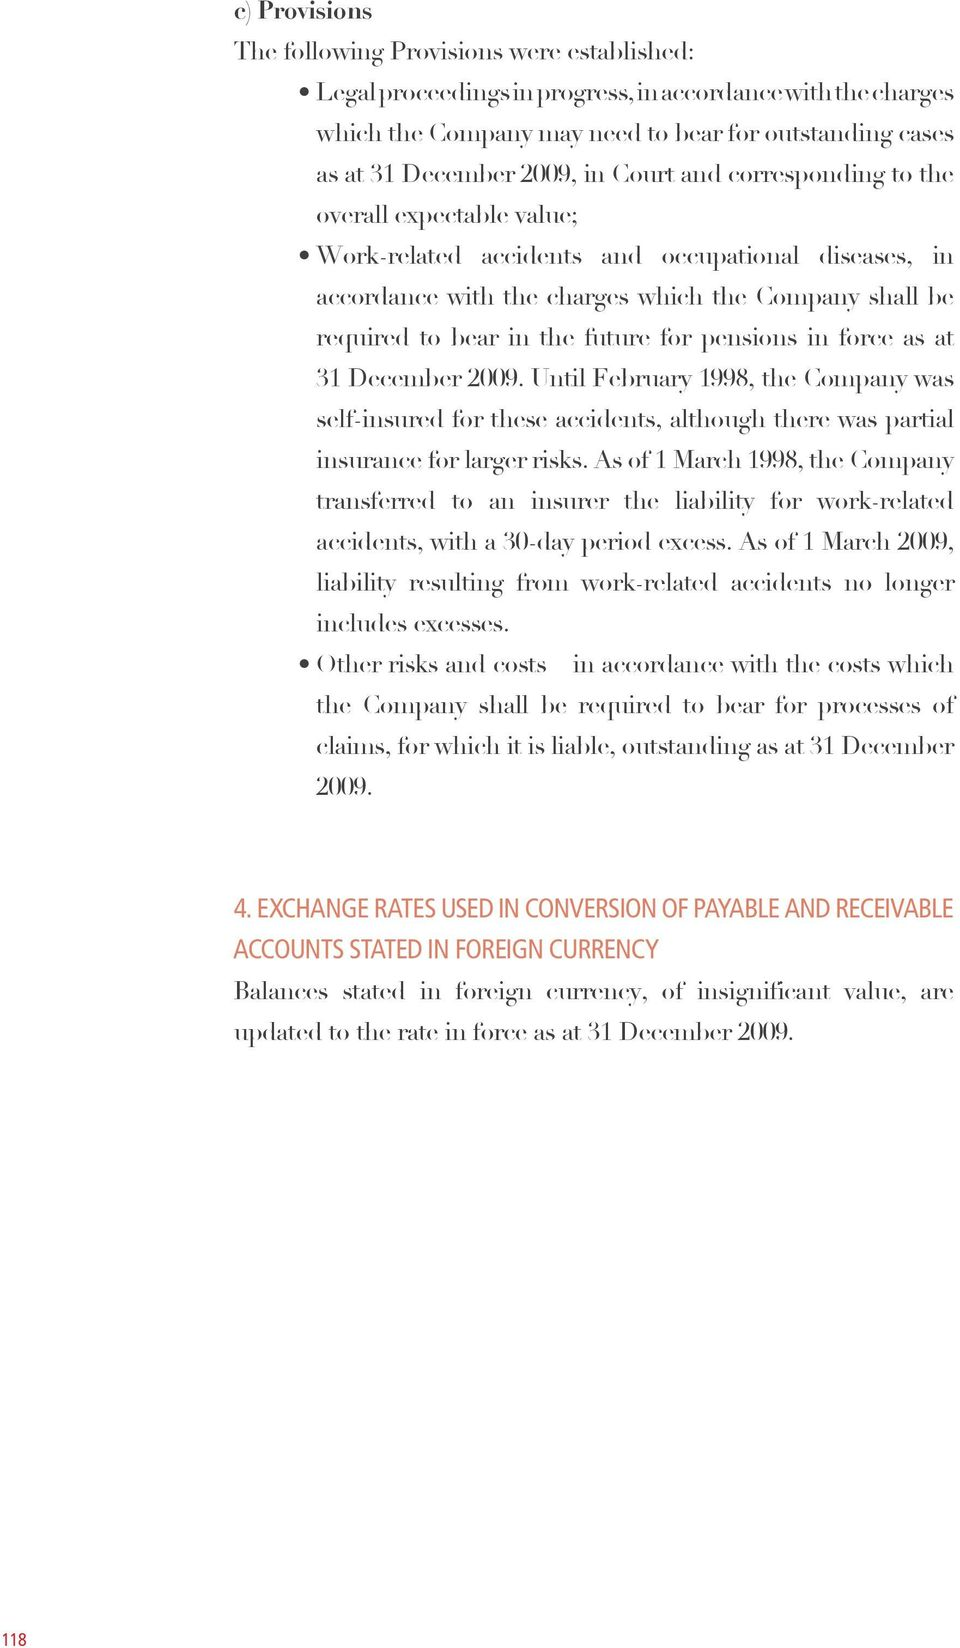 for pensions in force as at 31 December 2009. Until February 1998, the Company was self-insured for these accidents, although there was partial insurance for larger risks.